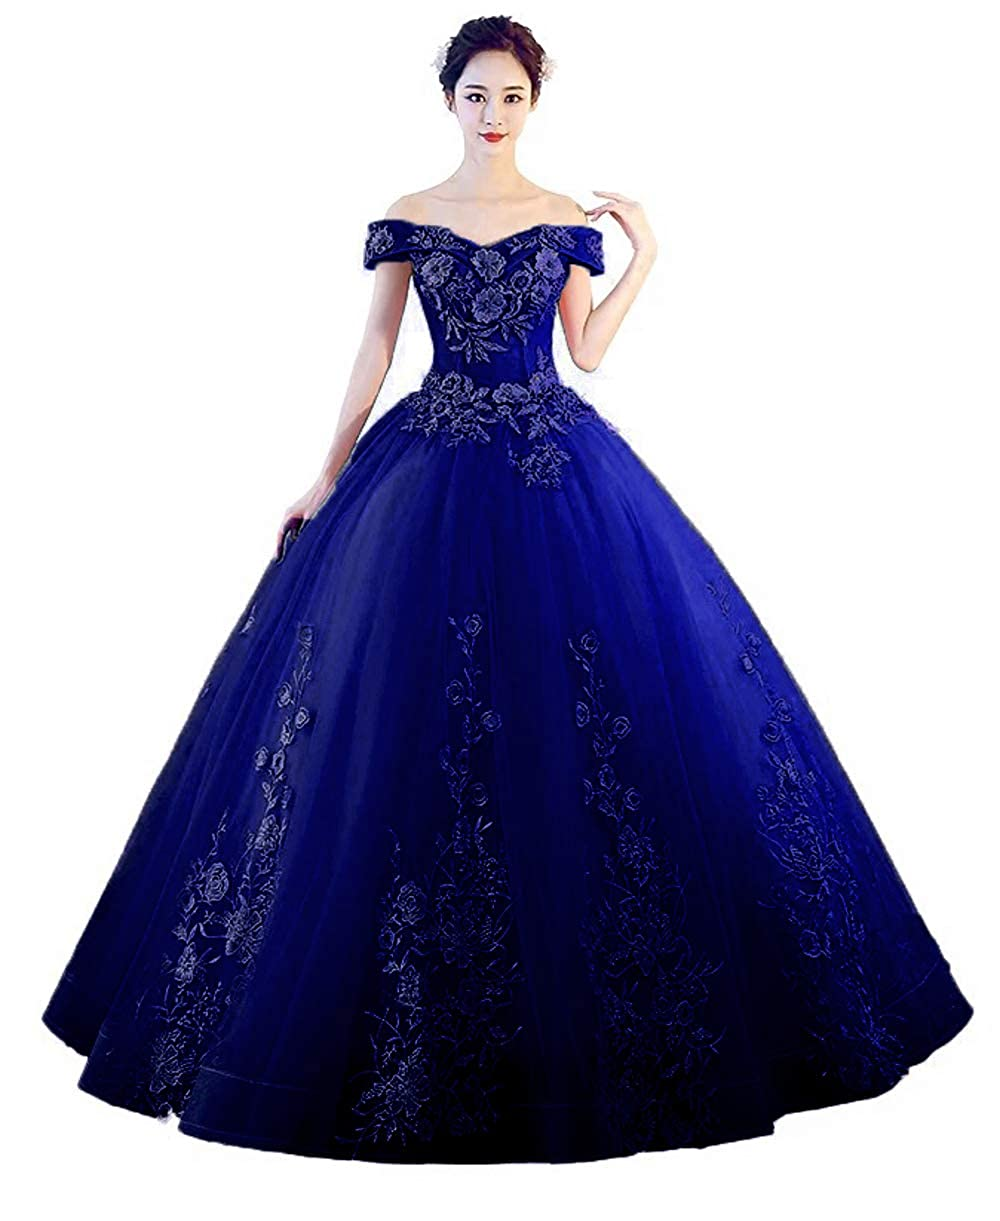 ARoyal bluee 1 LEJY Women's Off The Shoulder Quinceanera Dresses Applique Masquerade Ball Gowns Prom Dresses